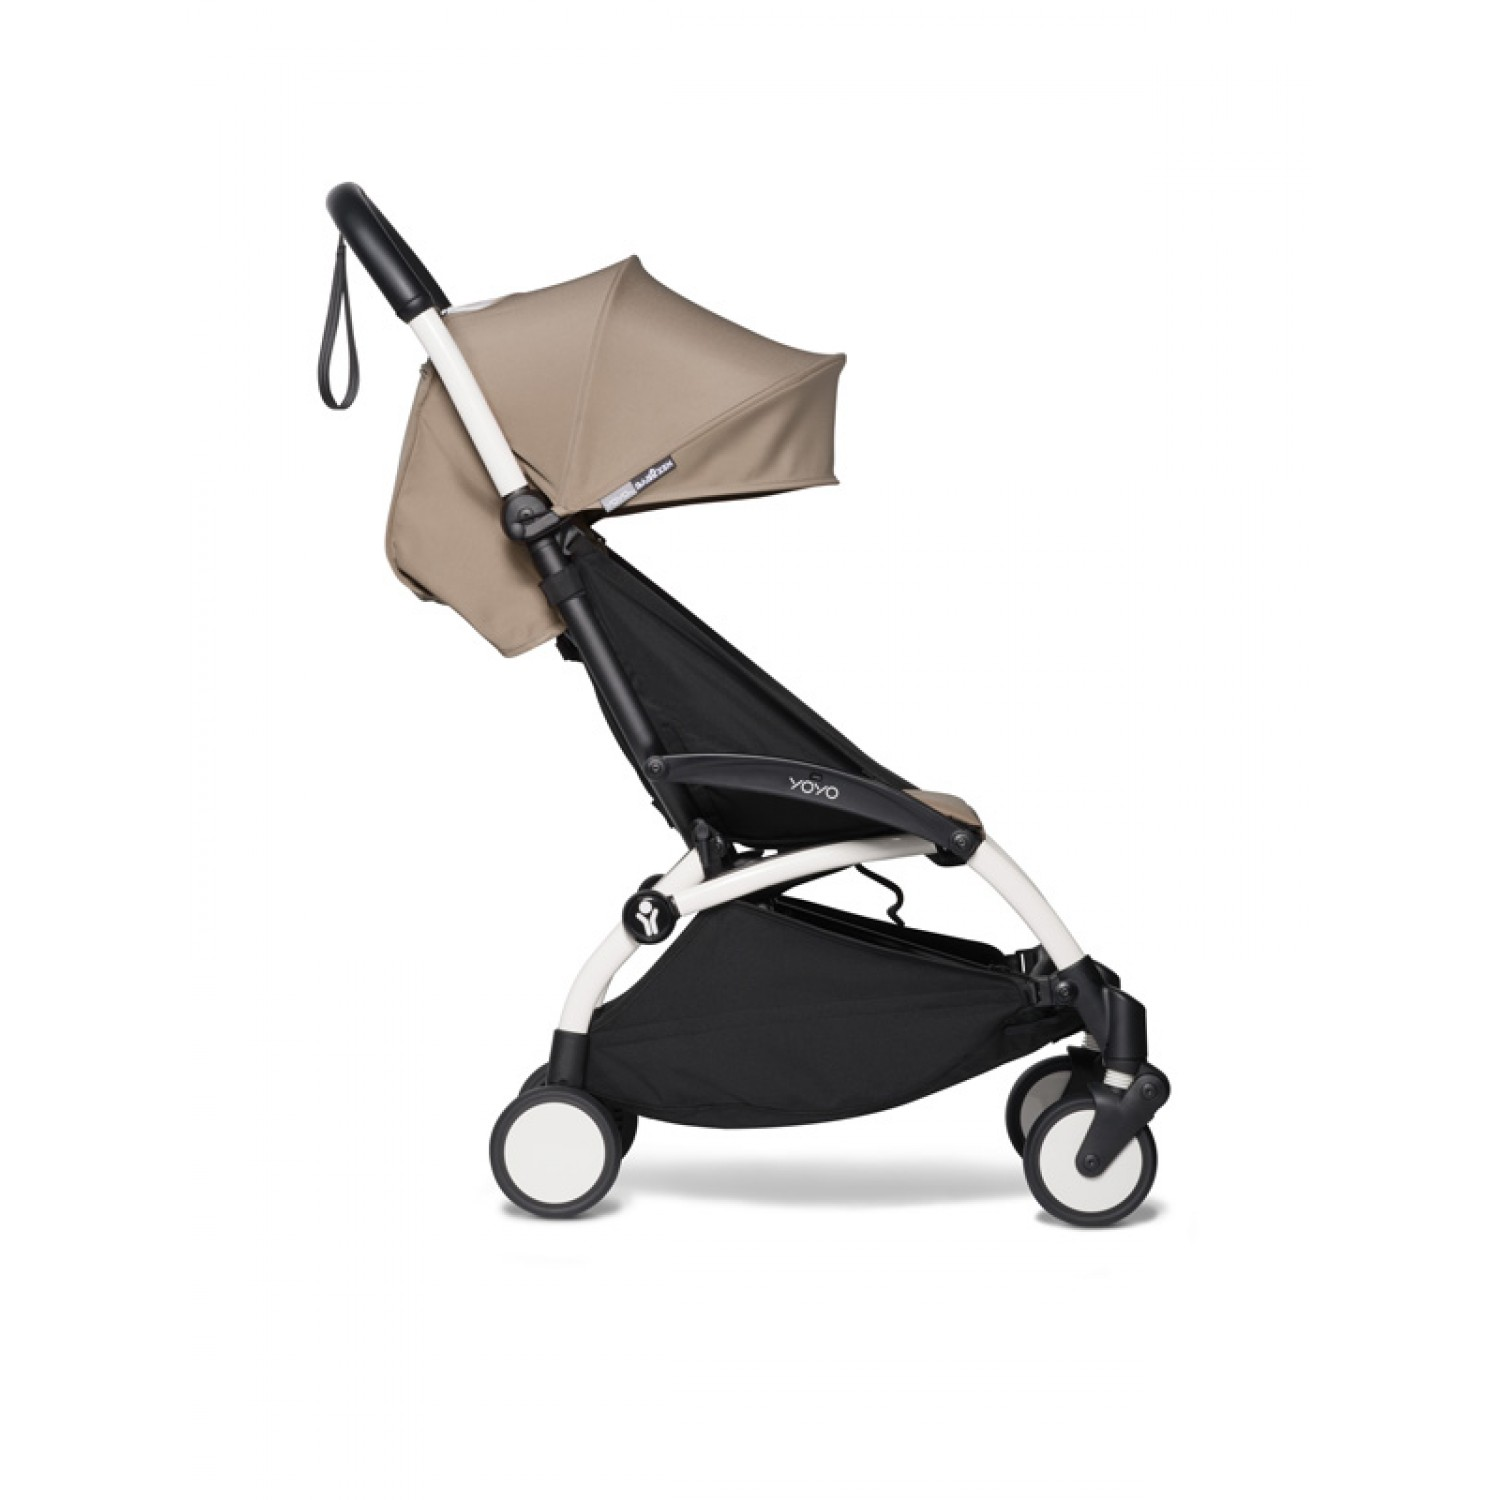 BABYZEN stroller YOYO2 6+ | White Chassis Taupe